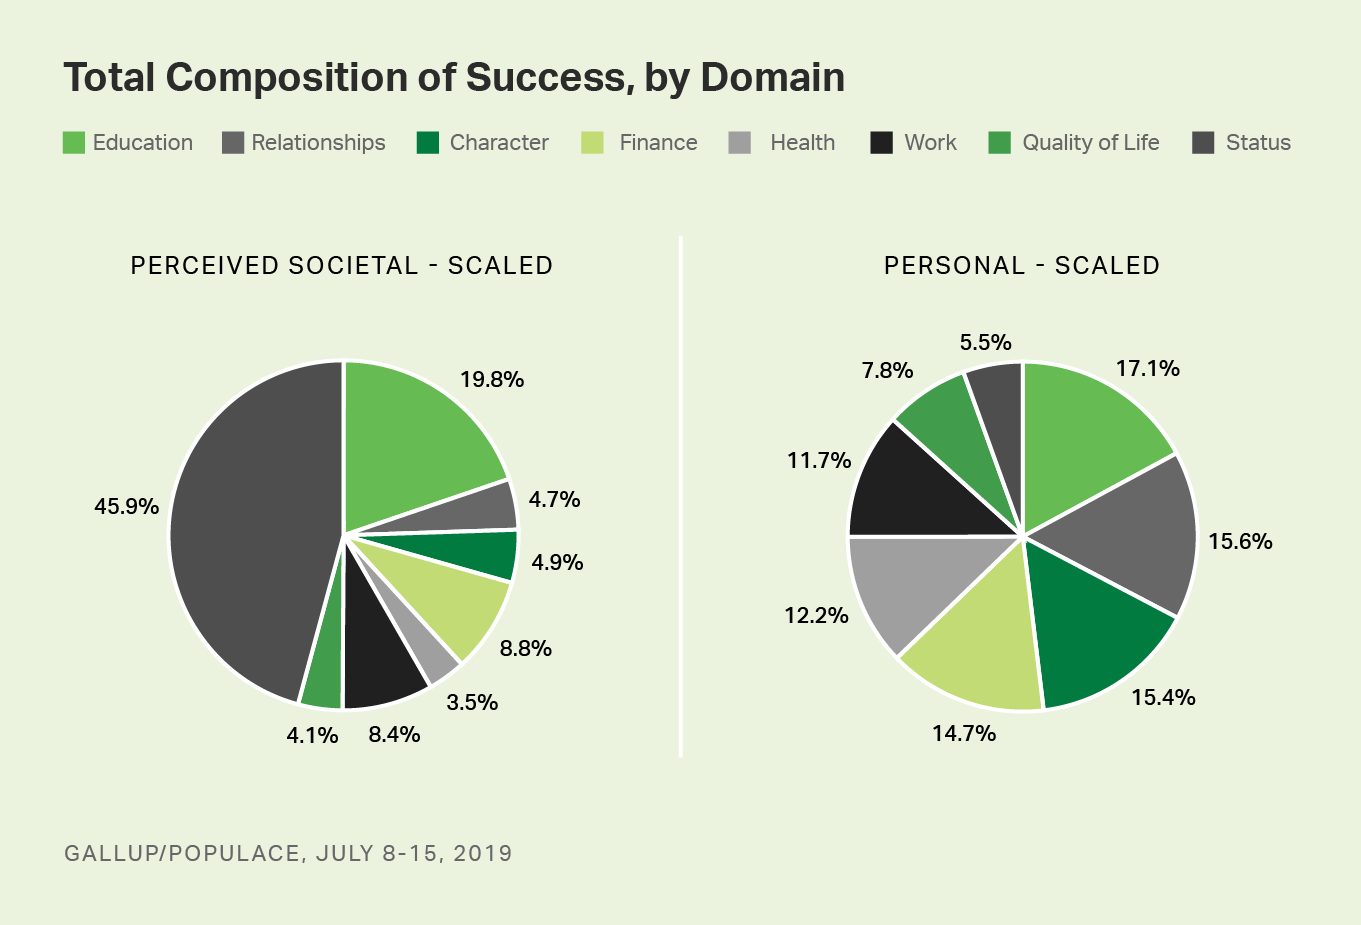 Pie graphs. Americans' perceptions of personal and societal definitions of success across eight domains.